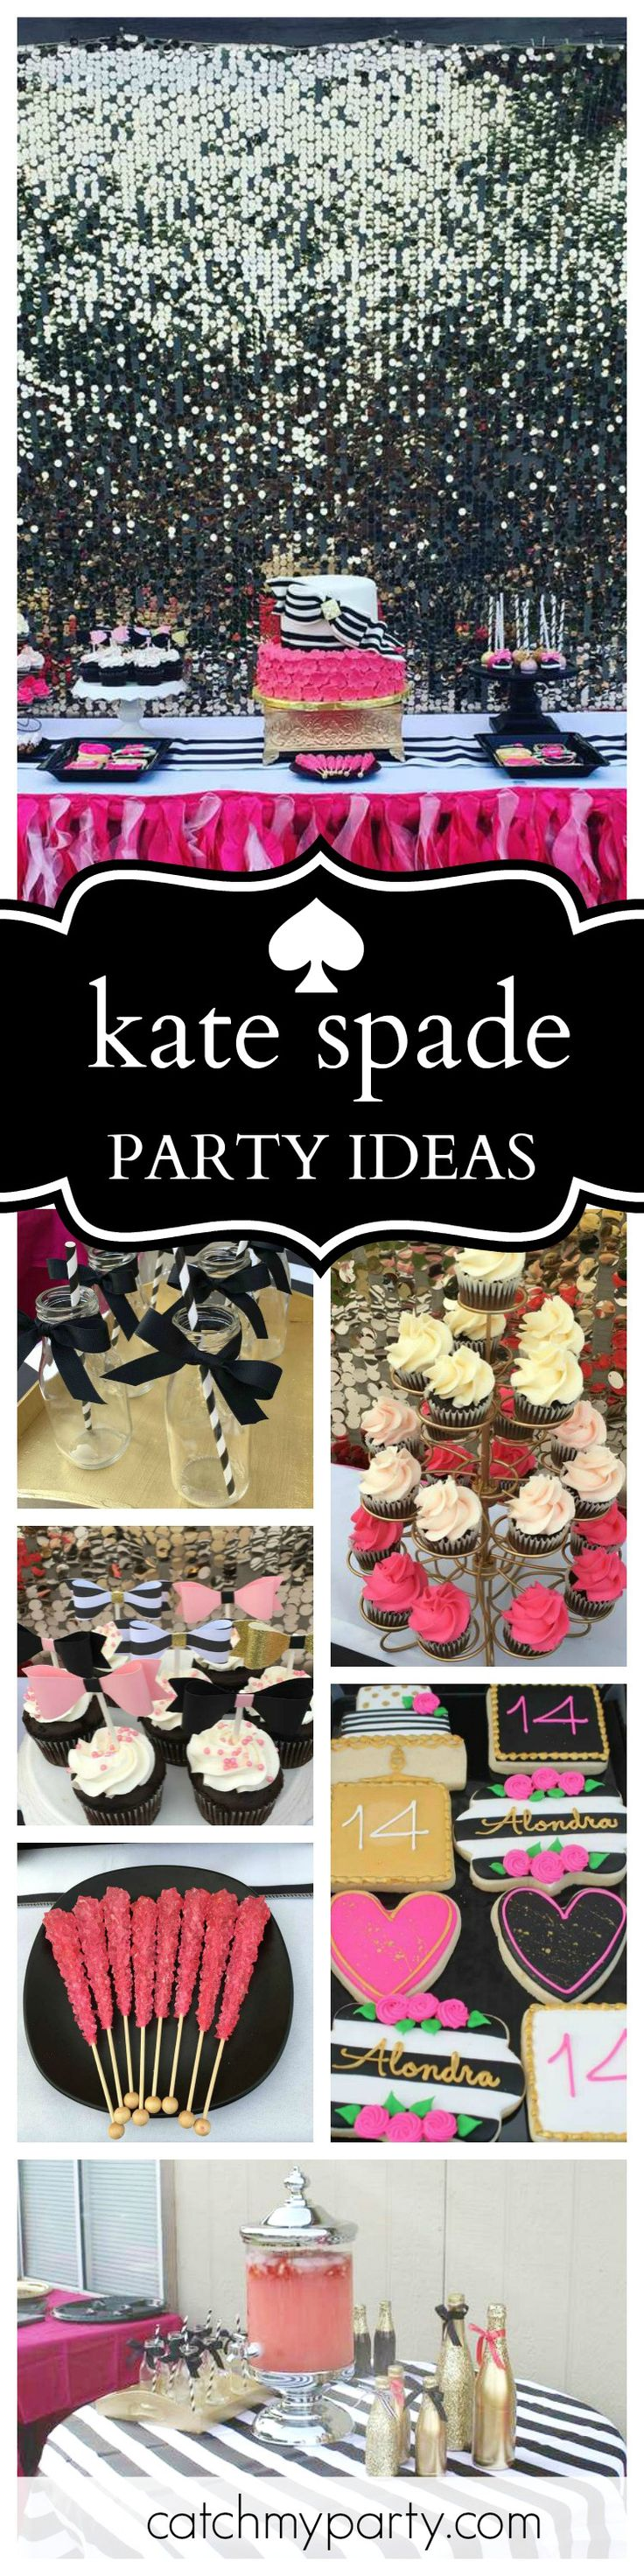 Don't miss this fabulous Kate Spade inspired birthday party. The cookies are fabulous and the cake to die for! See more party ideas and share yours at CatchMyParty.com